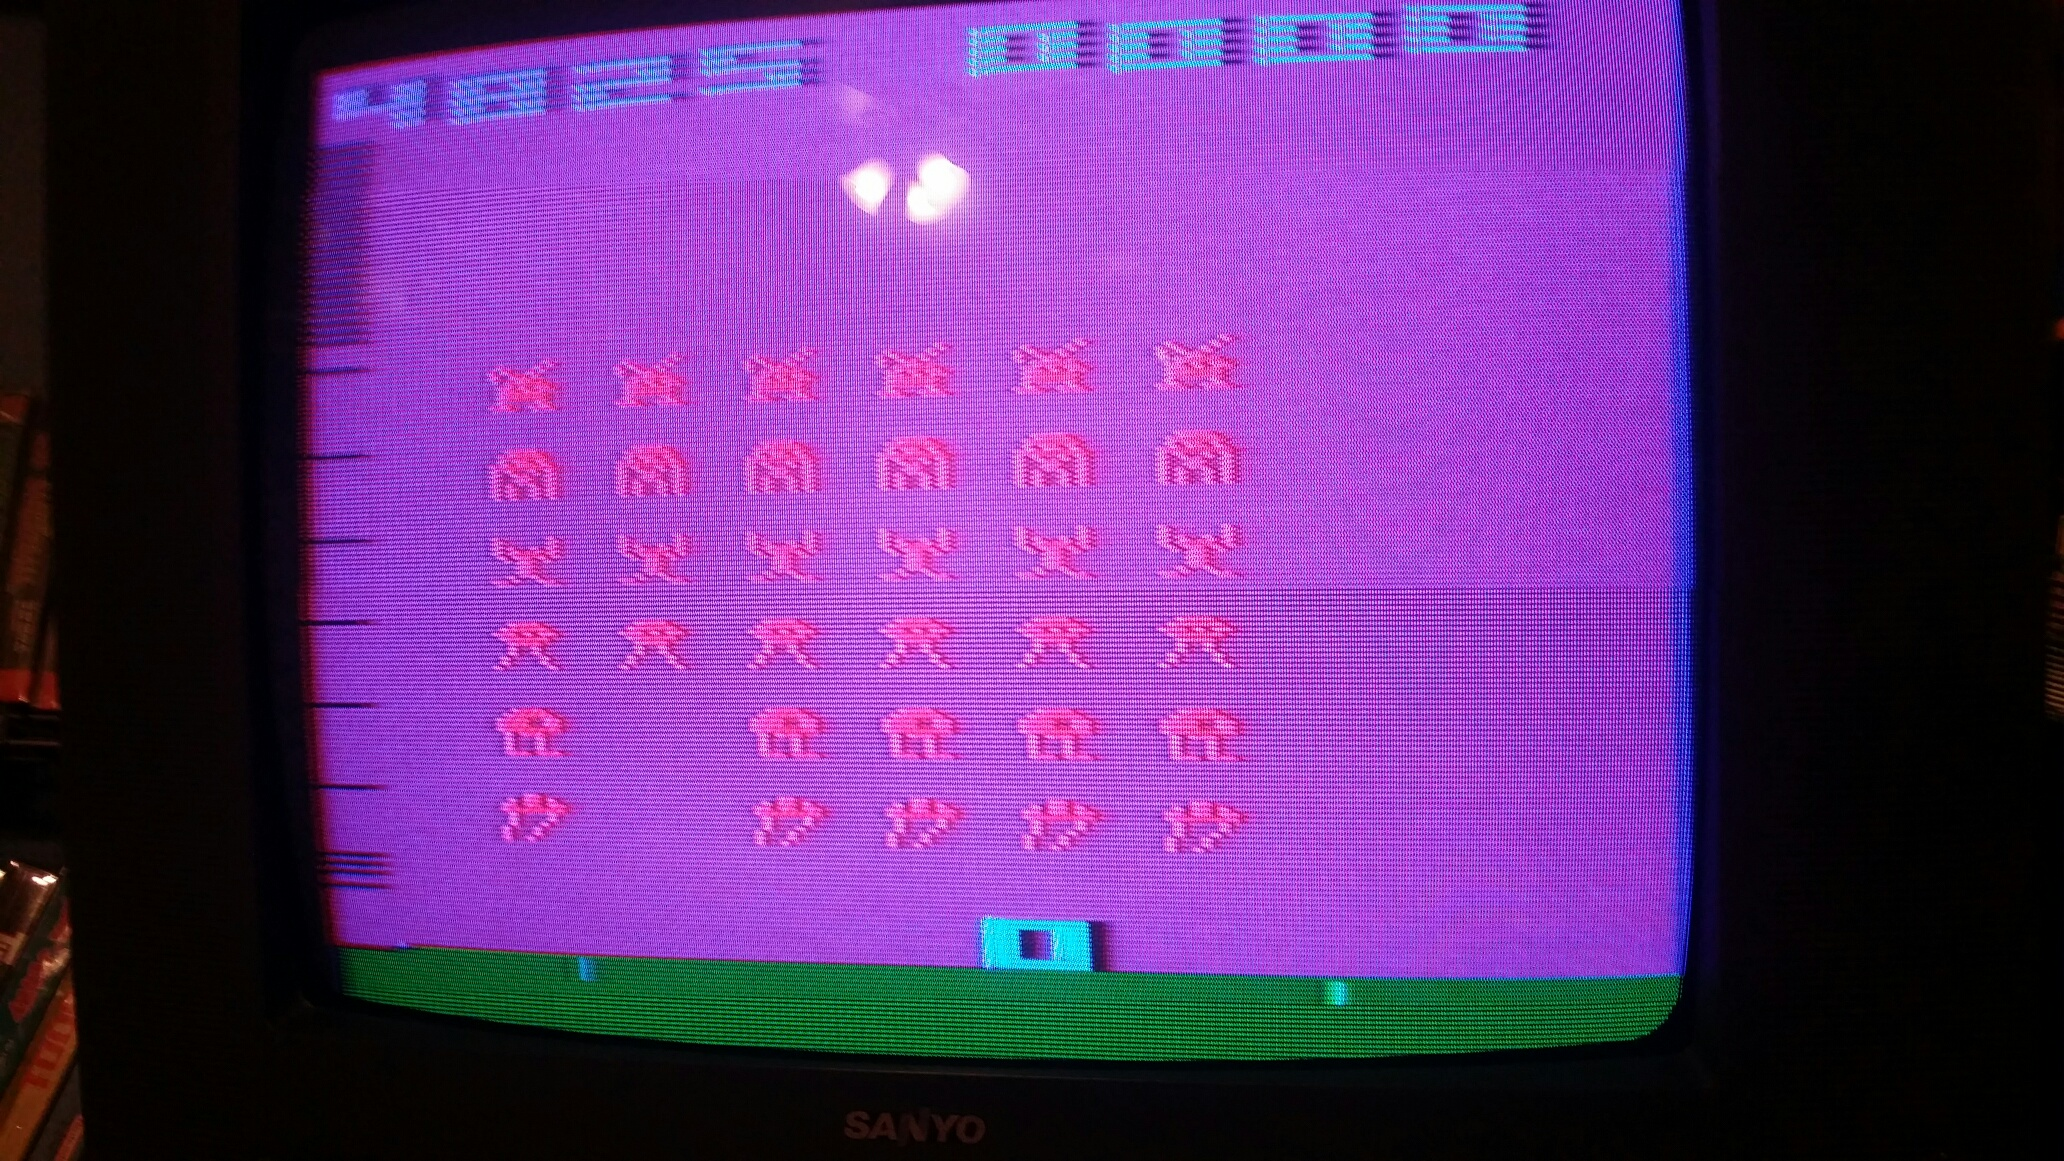 Space Invaders 4,825 points